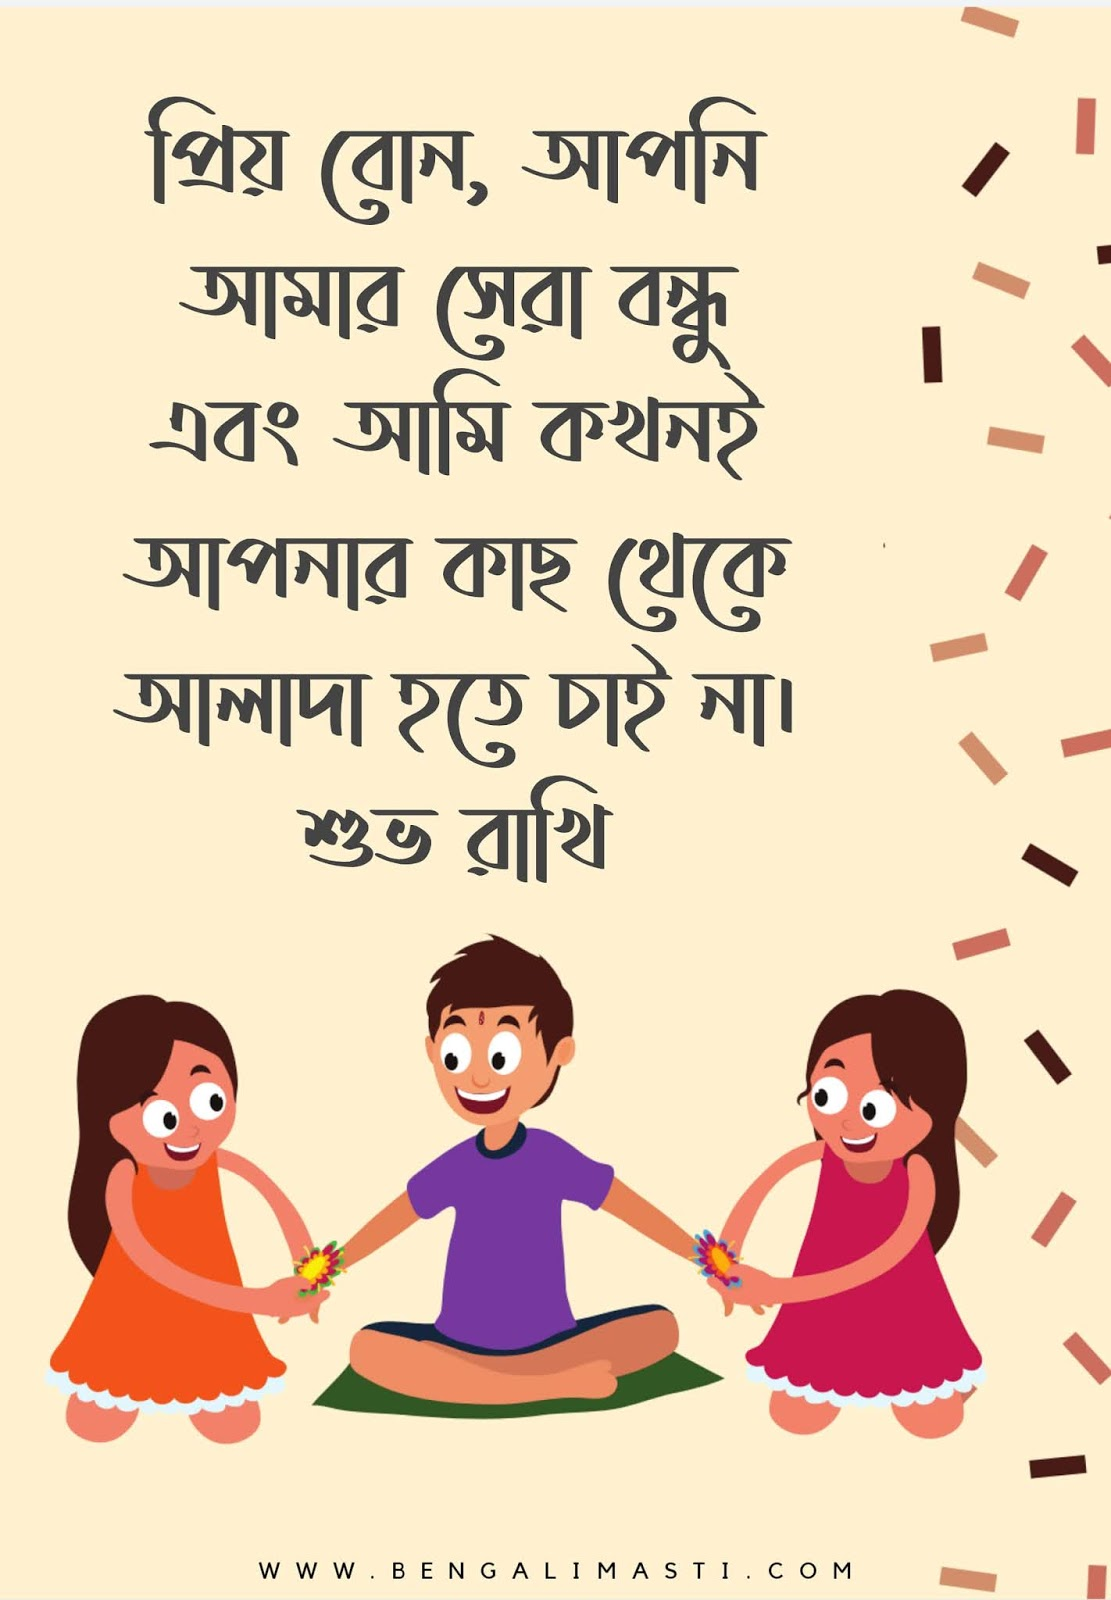 Raksha Bandhan Quotes, Wish, Status, SMS in bengali